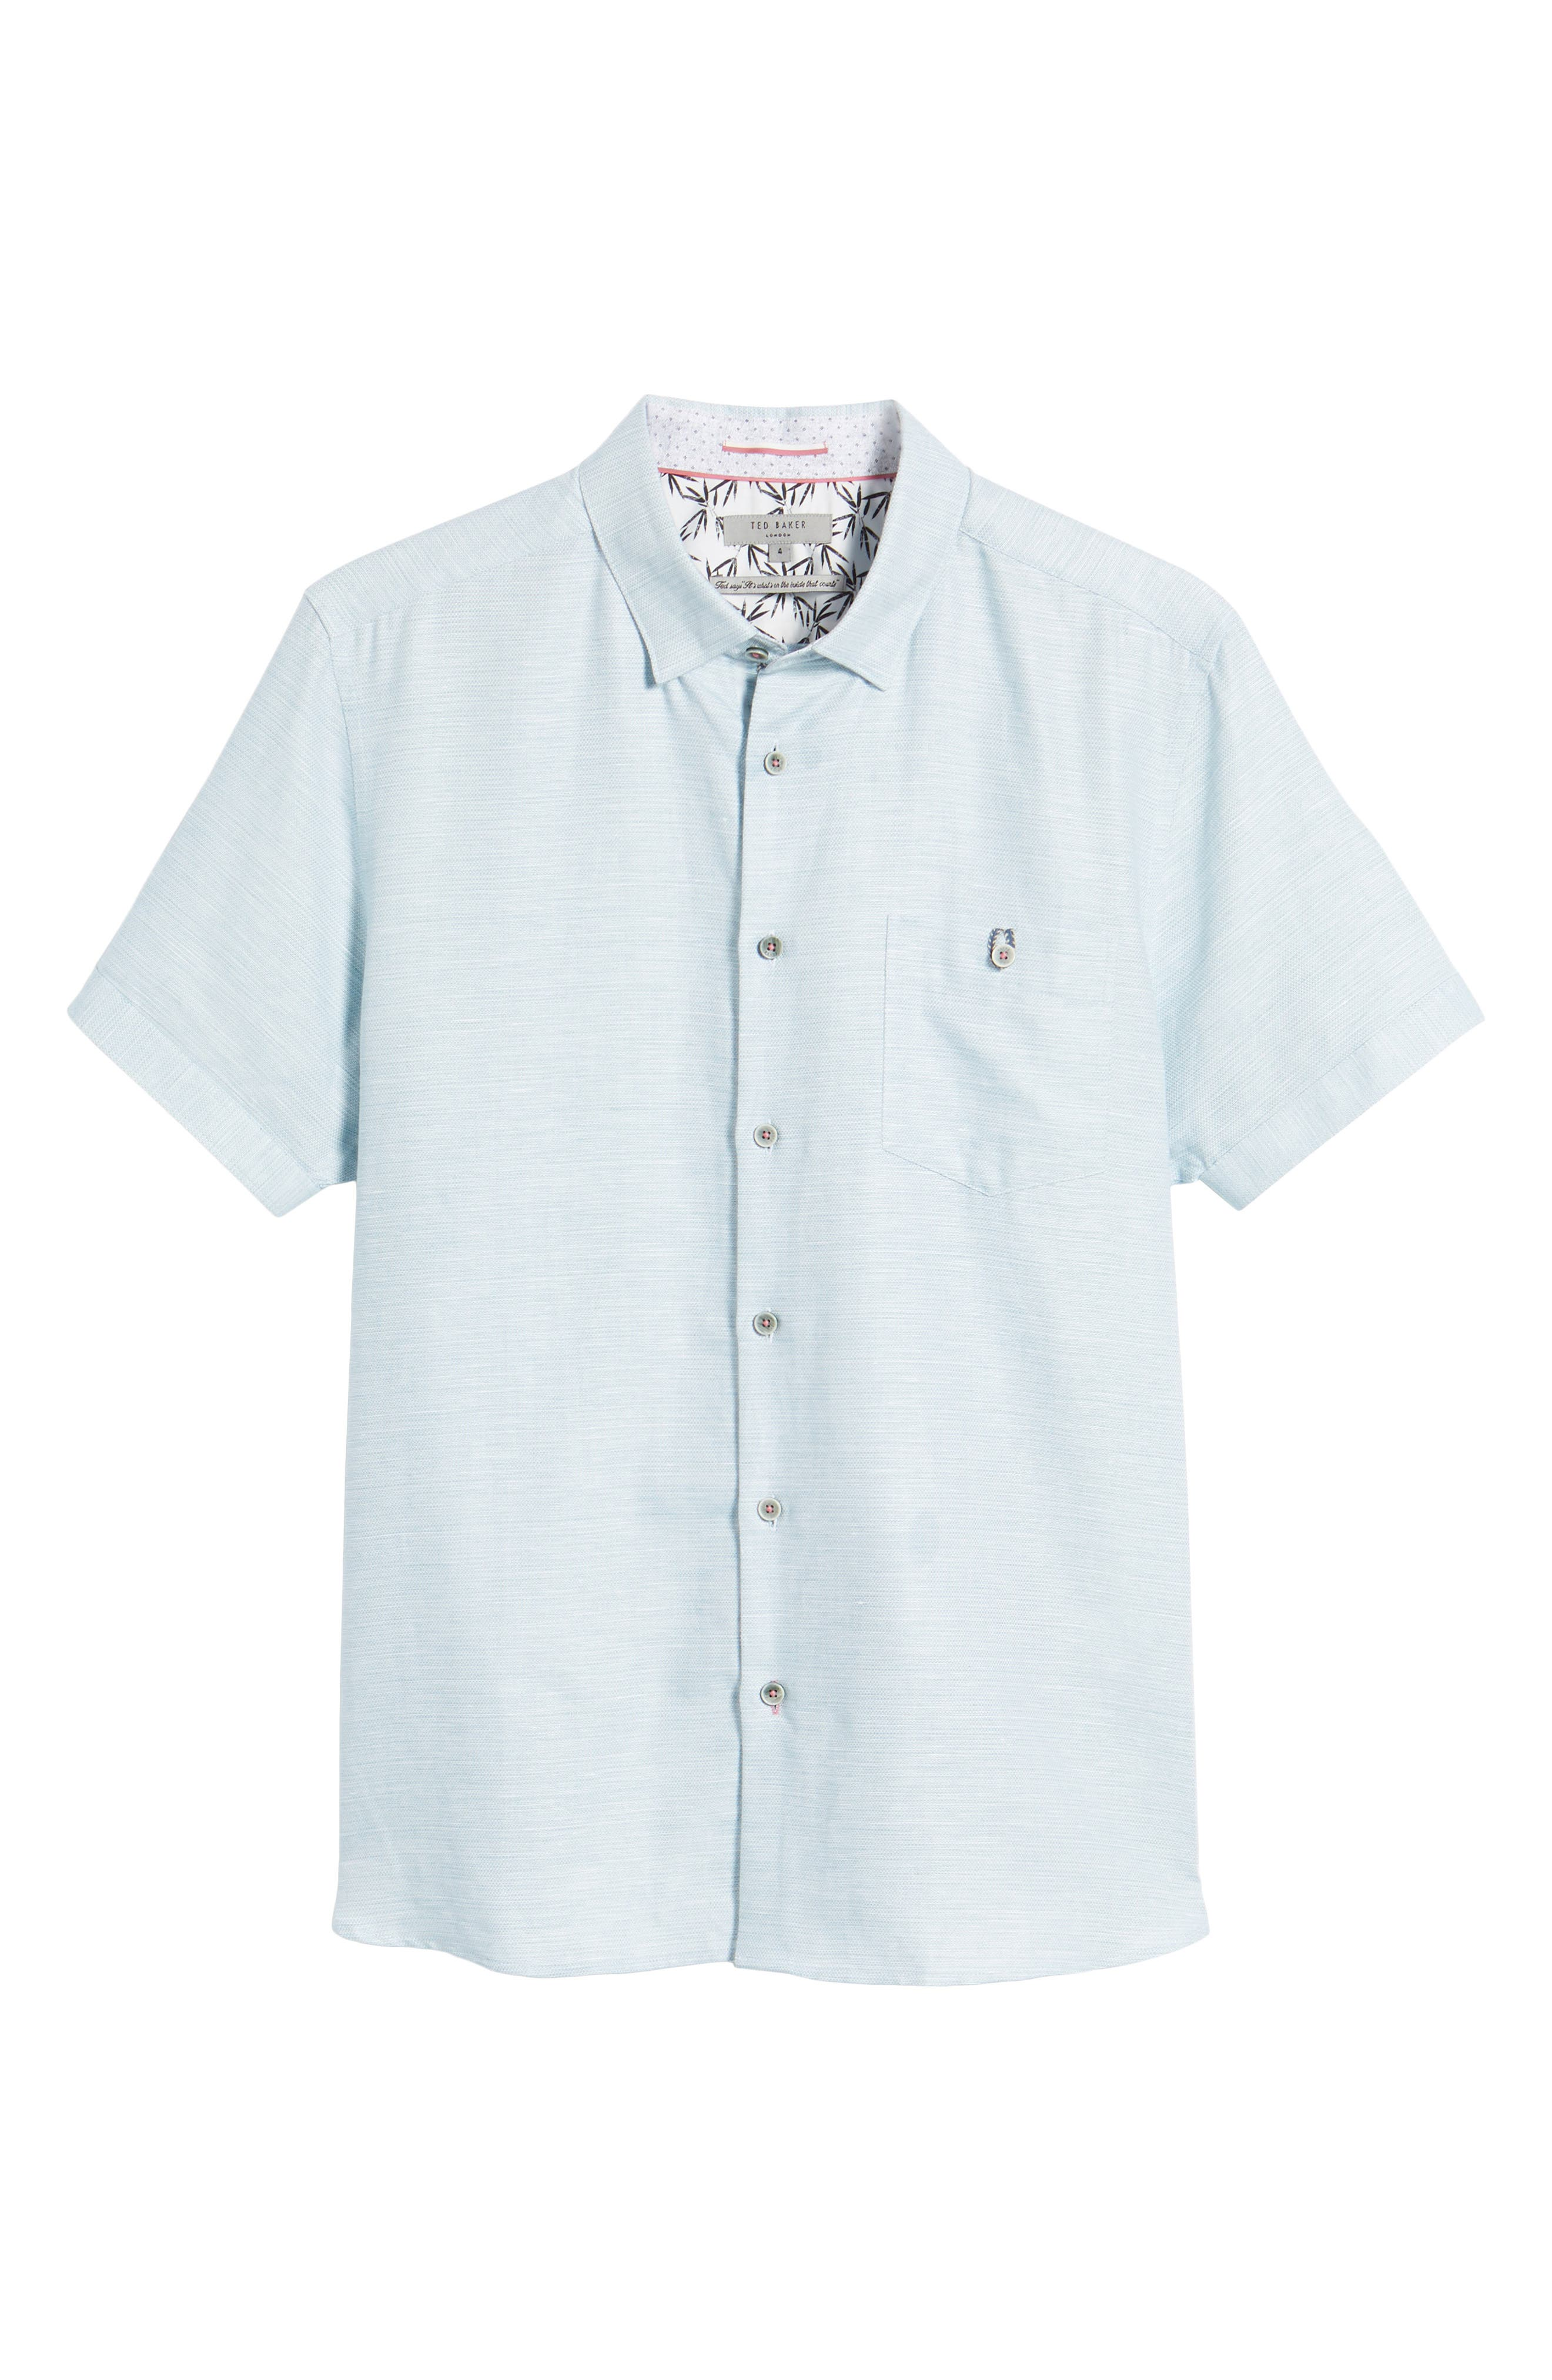 Peezett Short Sleeve Sport Shirt,                             Alternate thumbnail 6, color,                             300